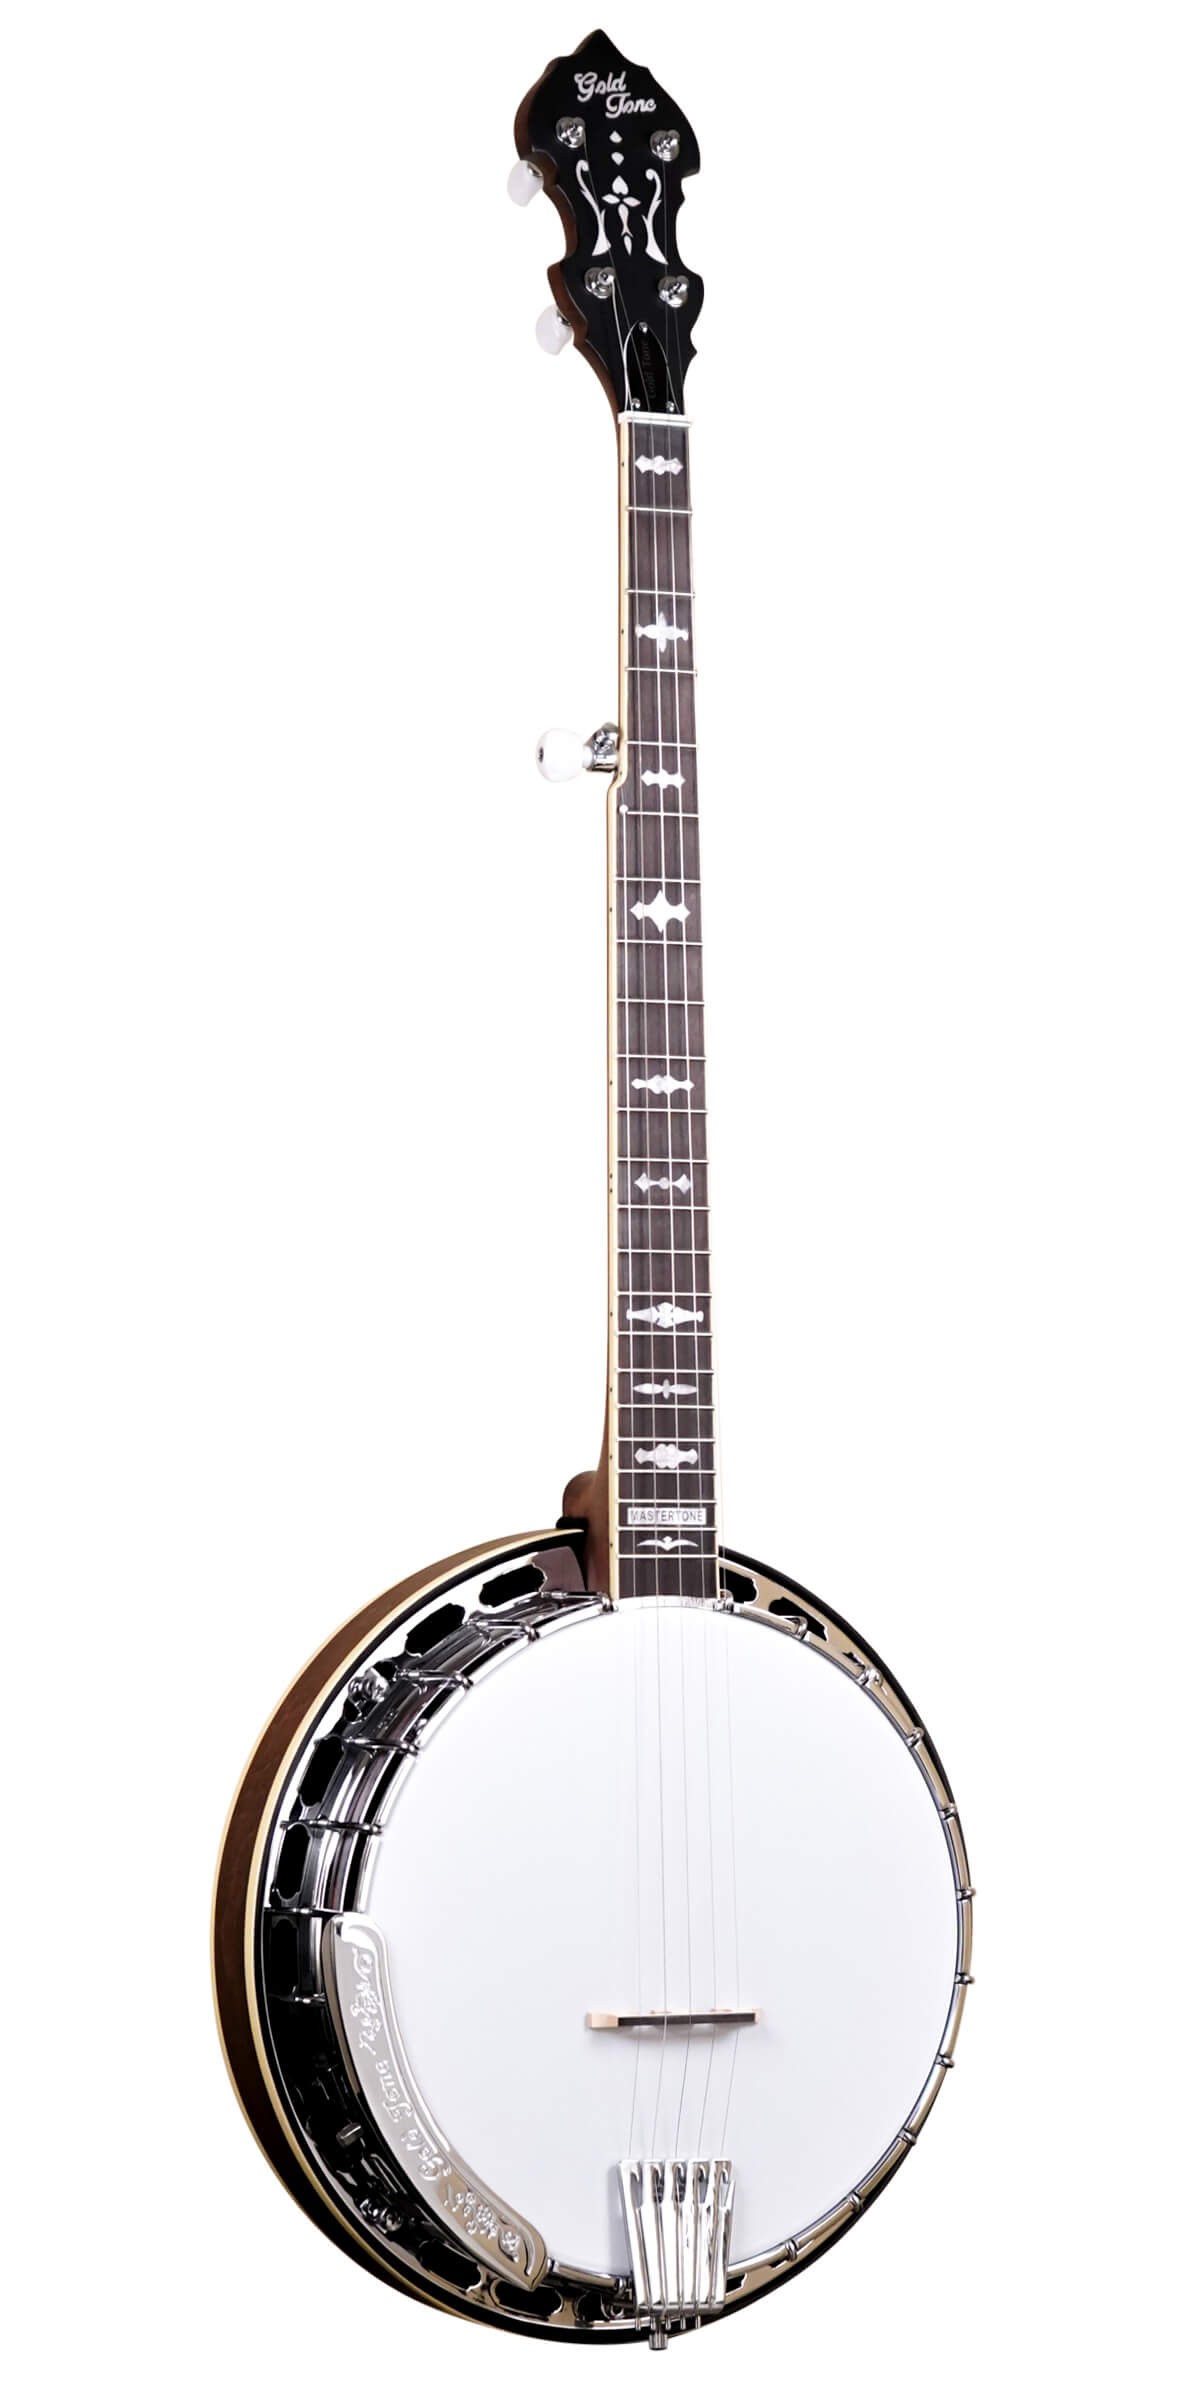 OB-150: Orange Blossom Banjo